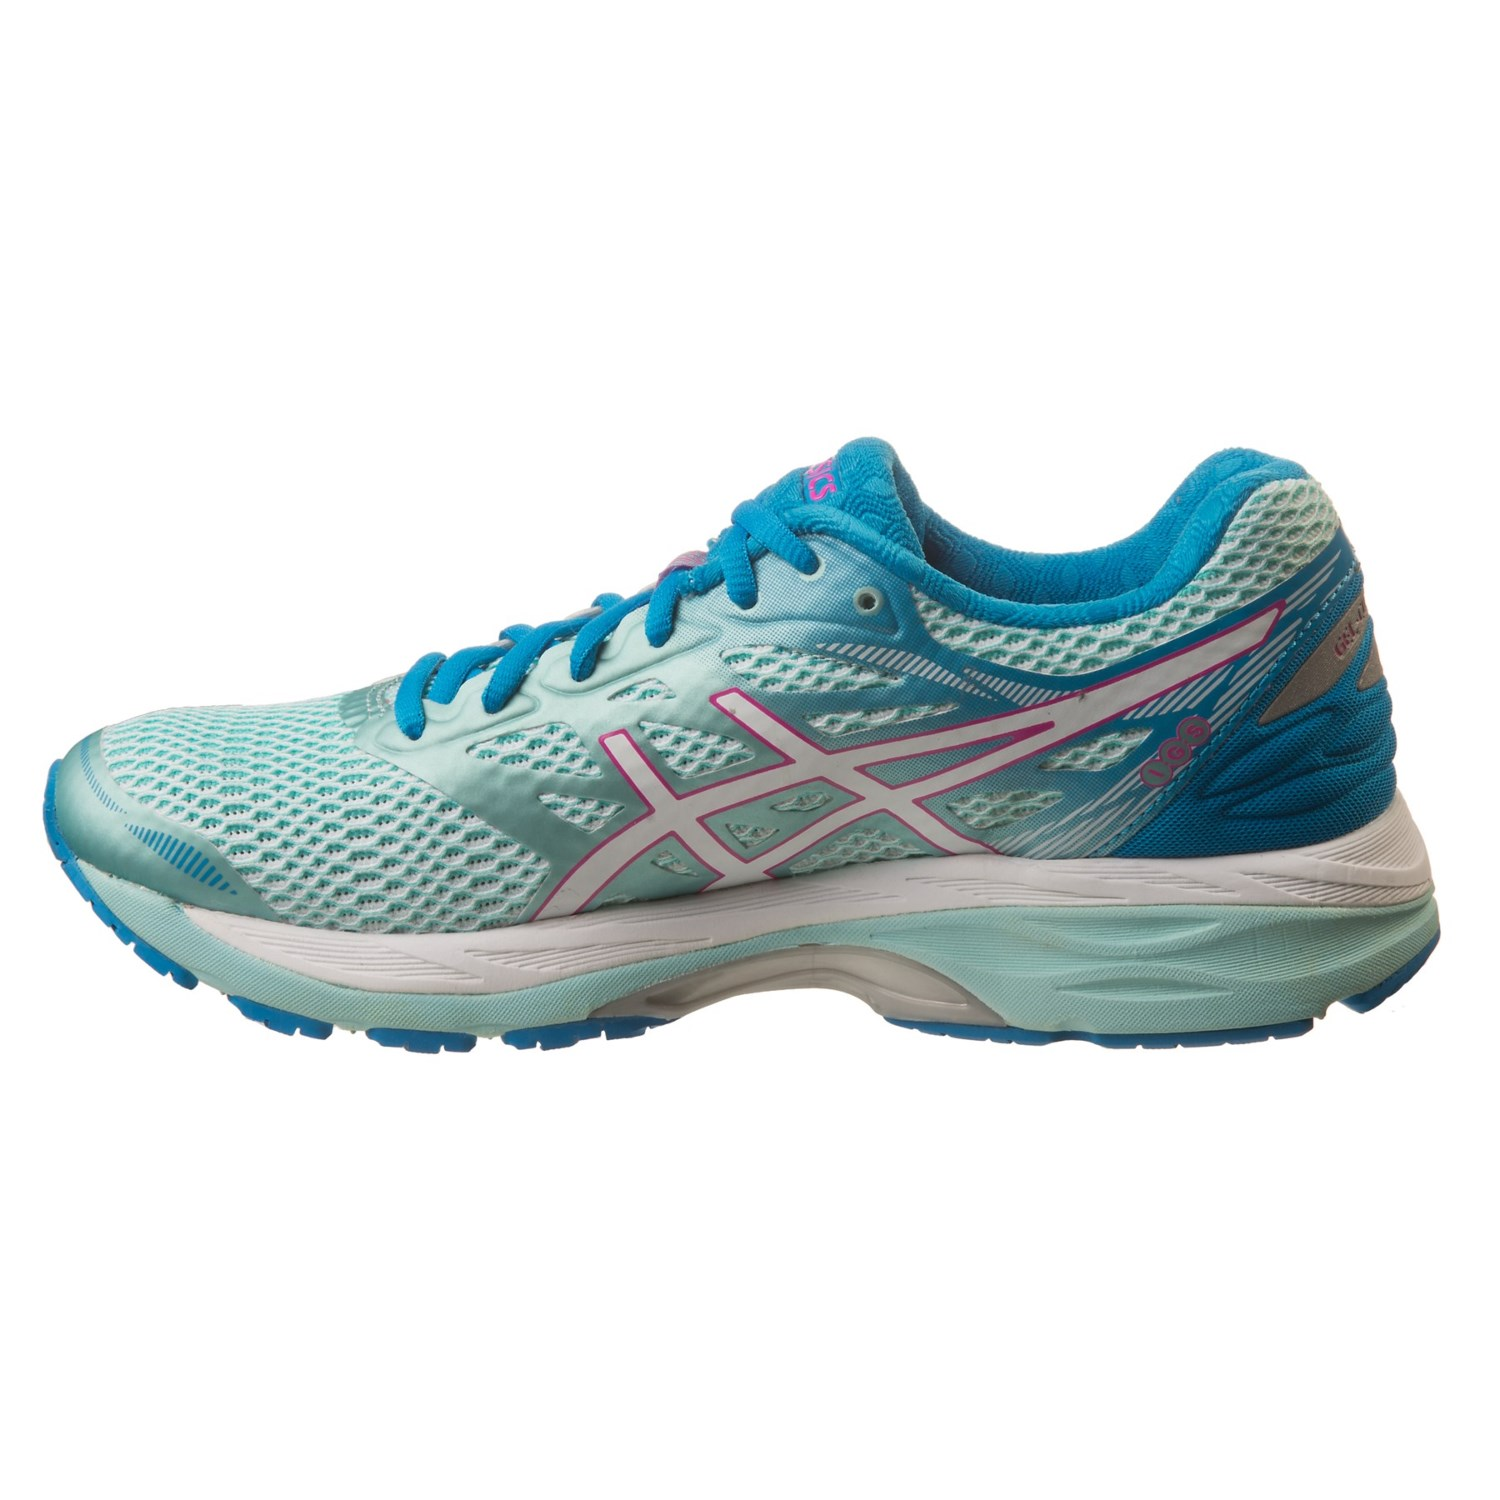 0f3530ae3a3d ASICS GEL-Cumulus 18 Running Shoes (For Women) - Save 51%